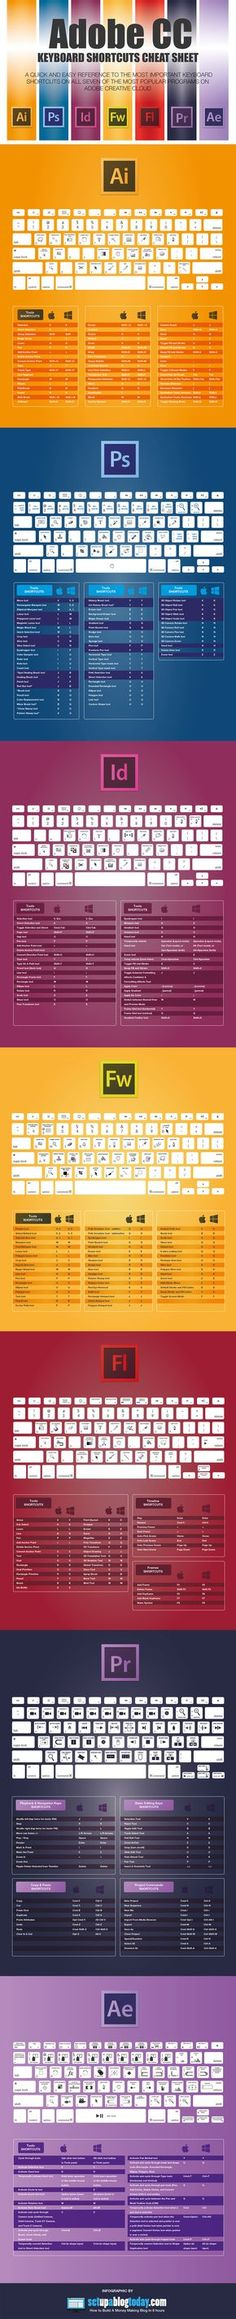 Keyboard shortcuts are the ticket to working faster in many programs. This cheat sheet will help you work more efficiently in Adobe Creative Cloud apps, including Photoshop, Illustrator, InDesign, and Premier Pro.